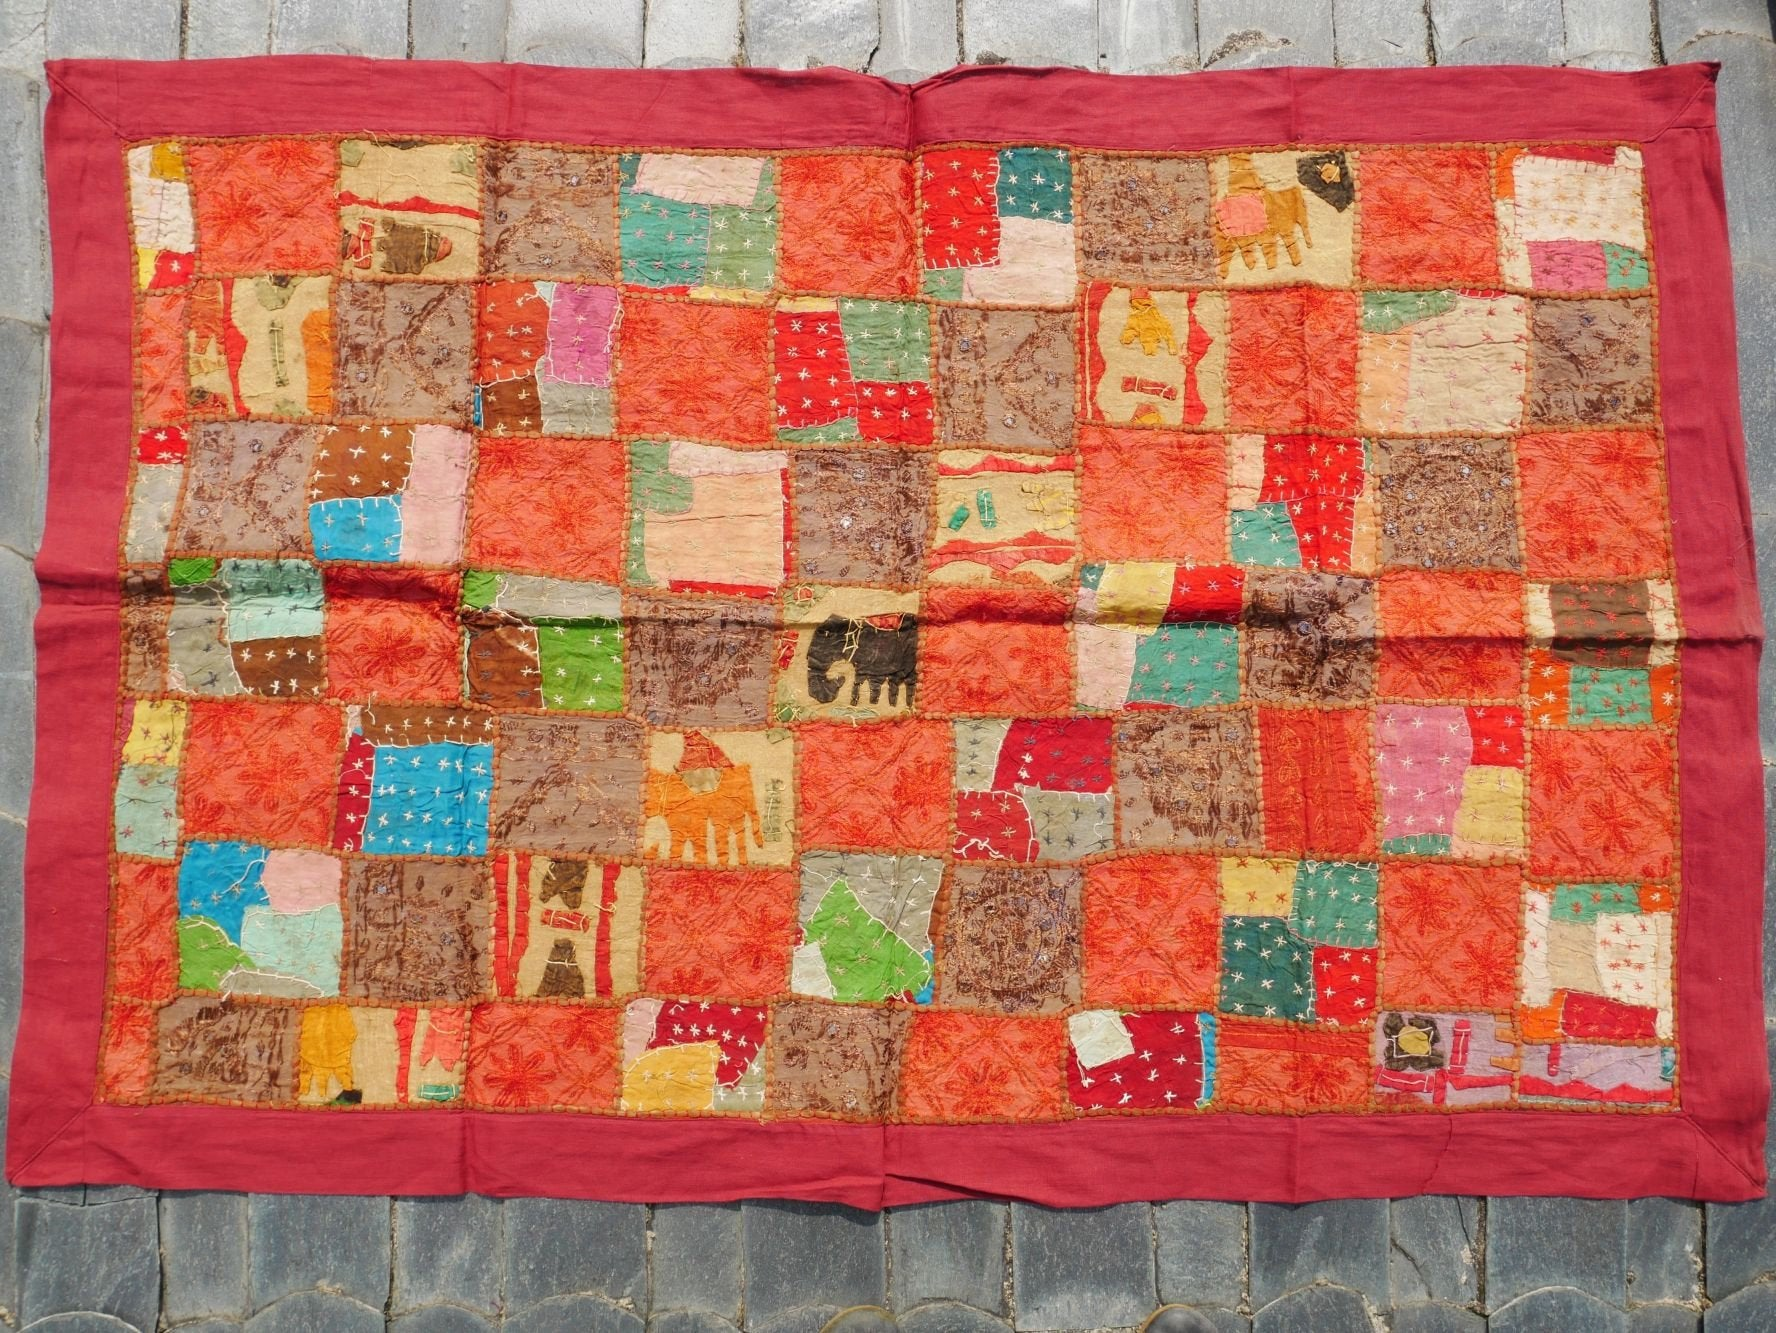 Wall tapestry - Indian wall hanging made of vintage patchwork textiles for hippie wall decor and bohemian bedroom decor